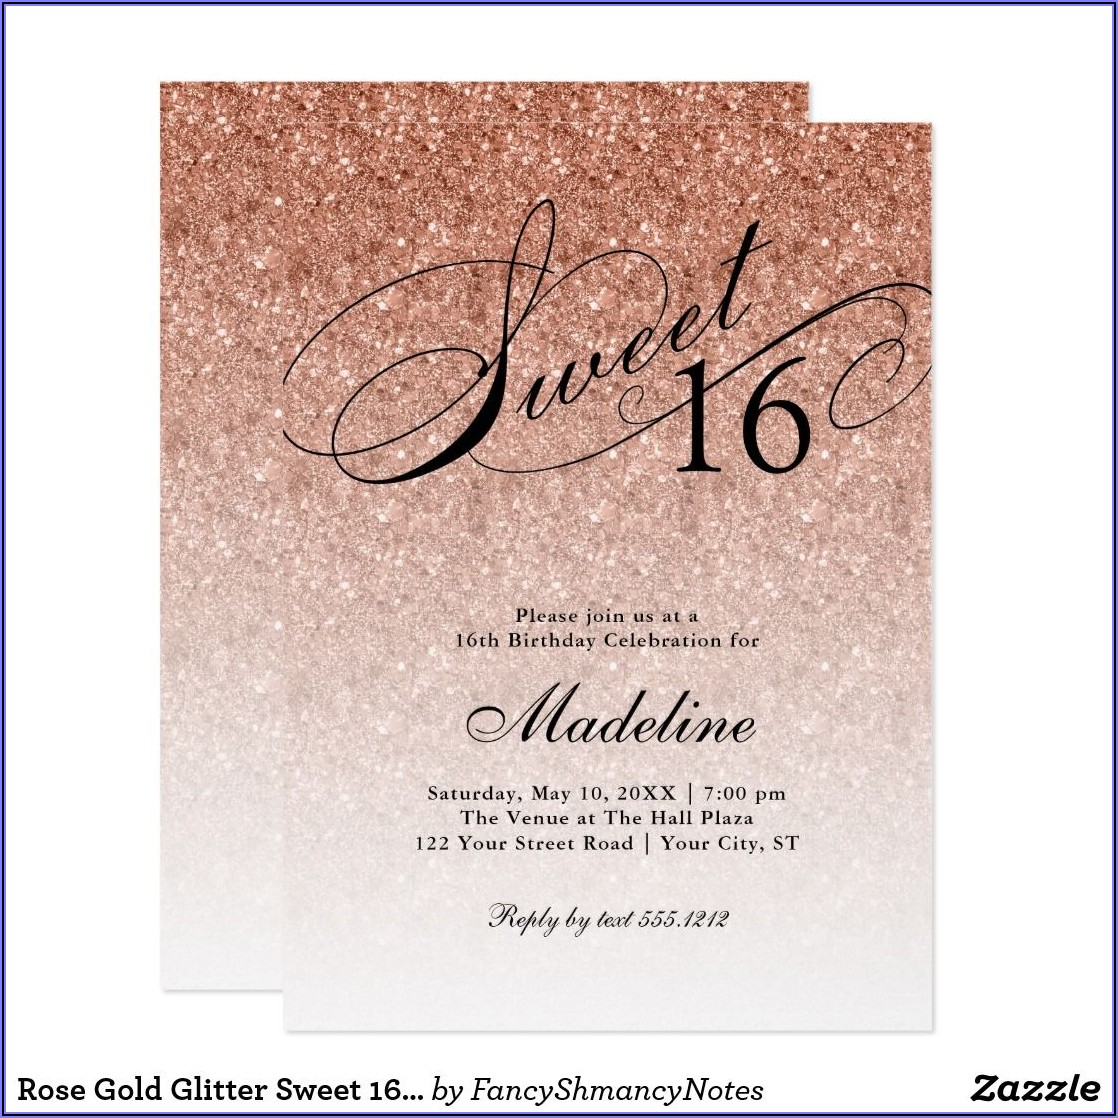 Rose Gold Sweet 16 Birthday Invitations